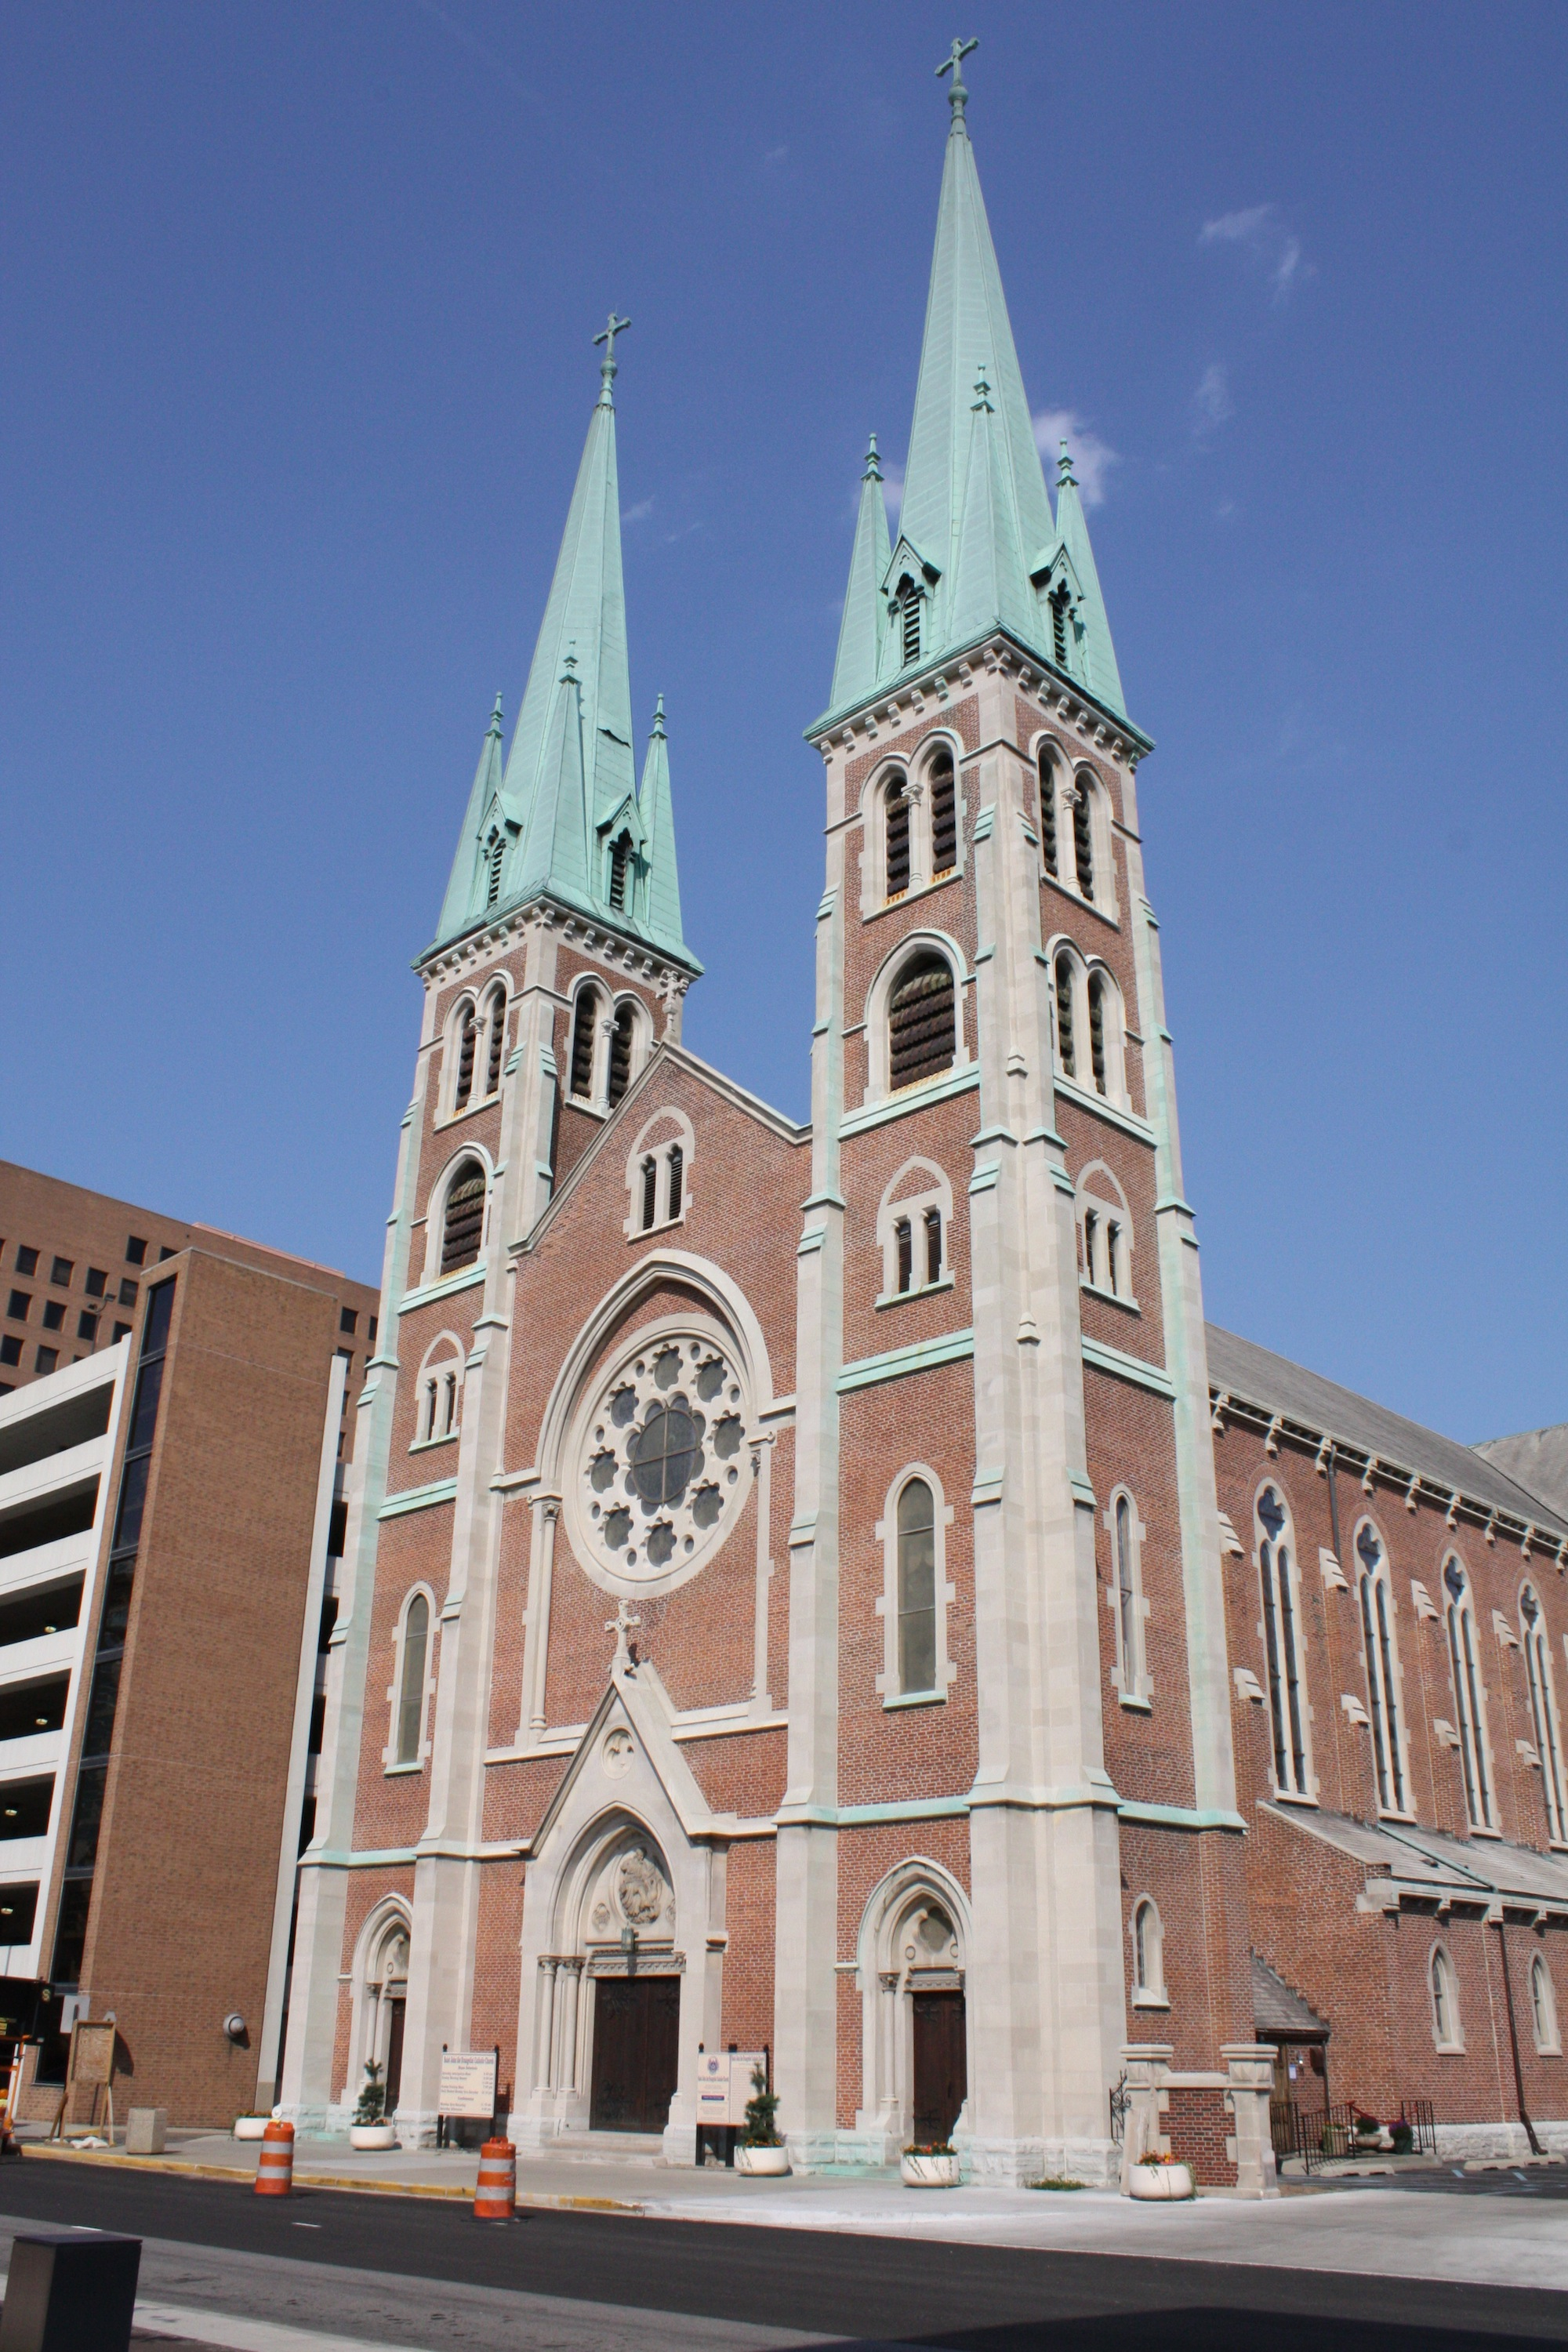 St. John's iconic spires were not added until 1893, over 20 years after the main part of the church had been completed.